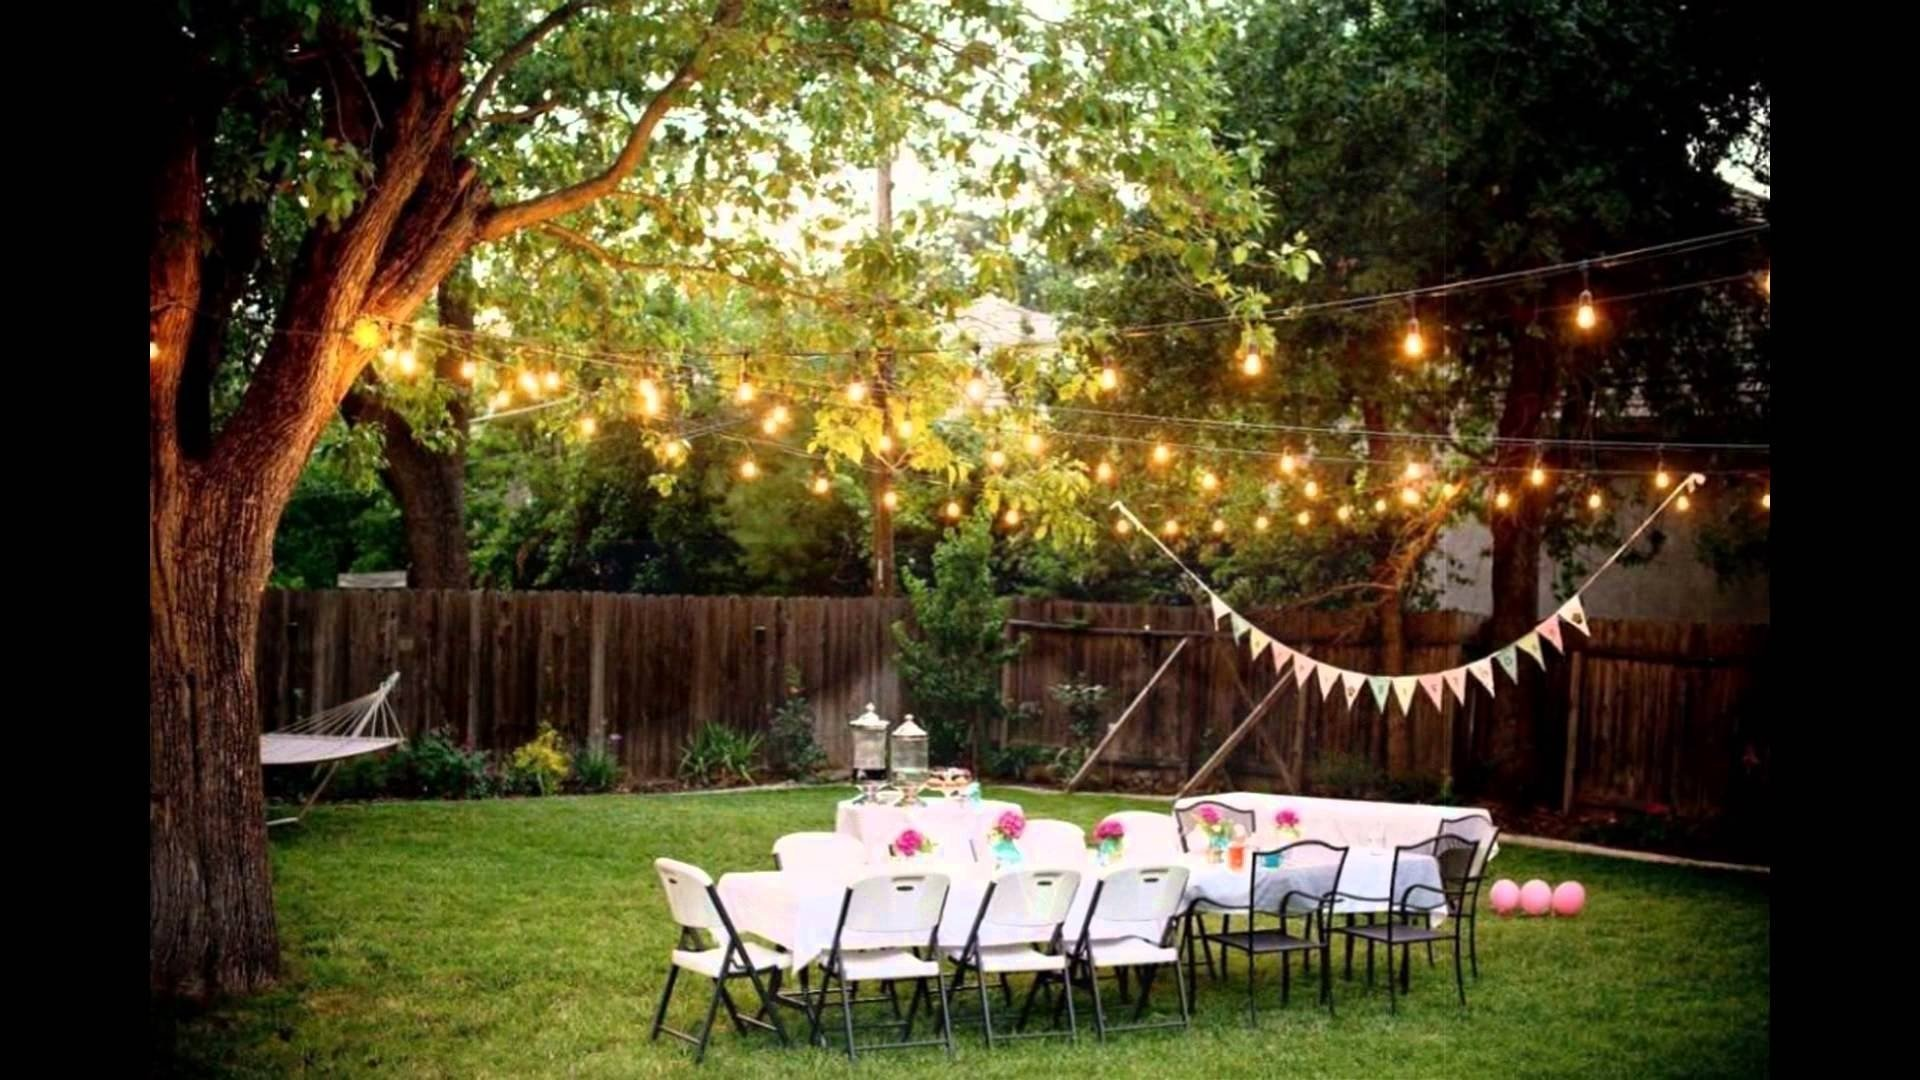 10 Fantastic Small Backyard Wedding Ideas On A Budget backyard weddings on a budget youtube 1